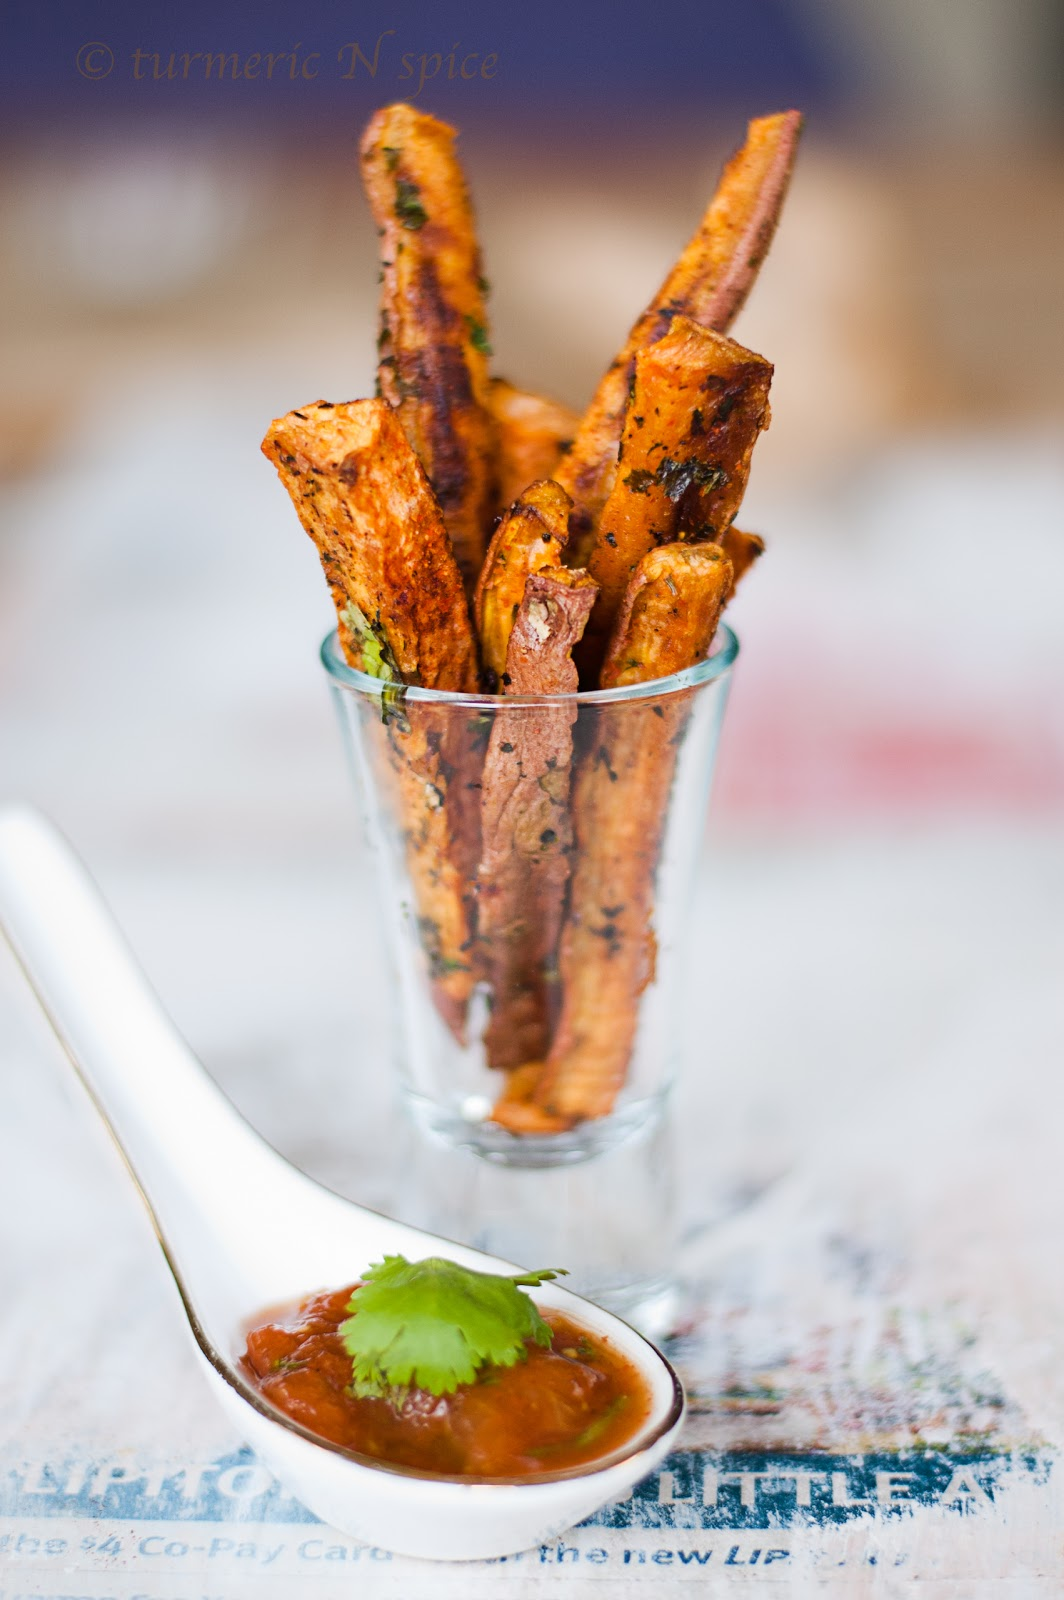 ... spice: Curried Sweet Potato Fries (baked) with a Tomato Curry Chutney